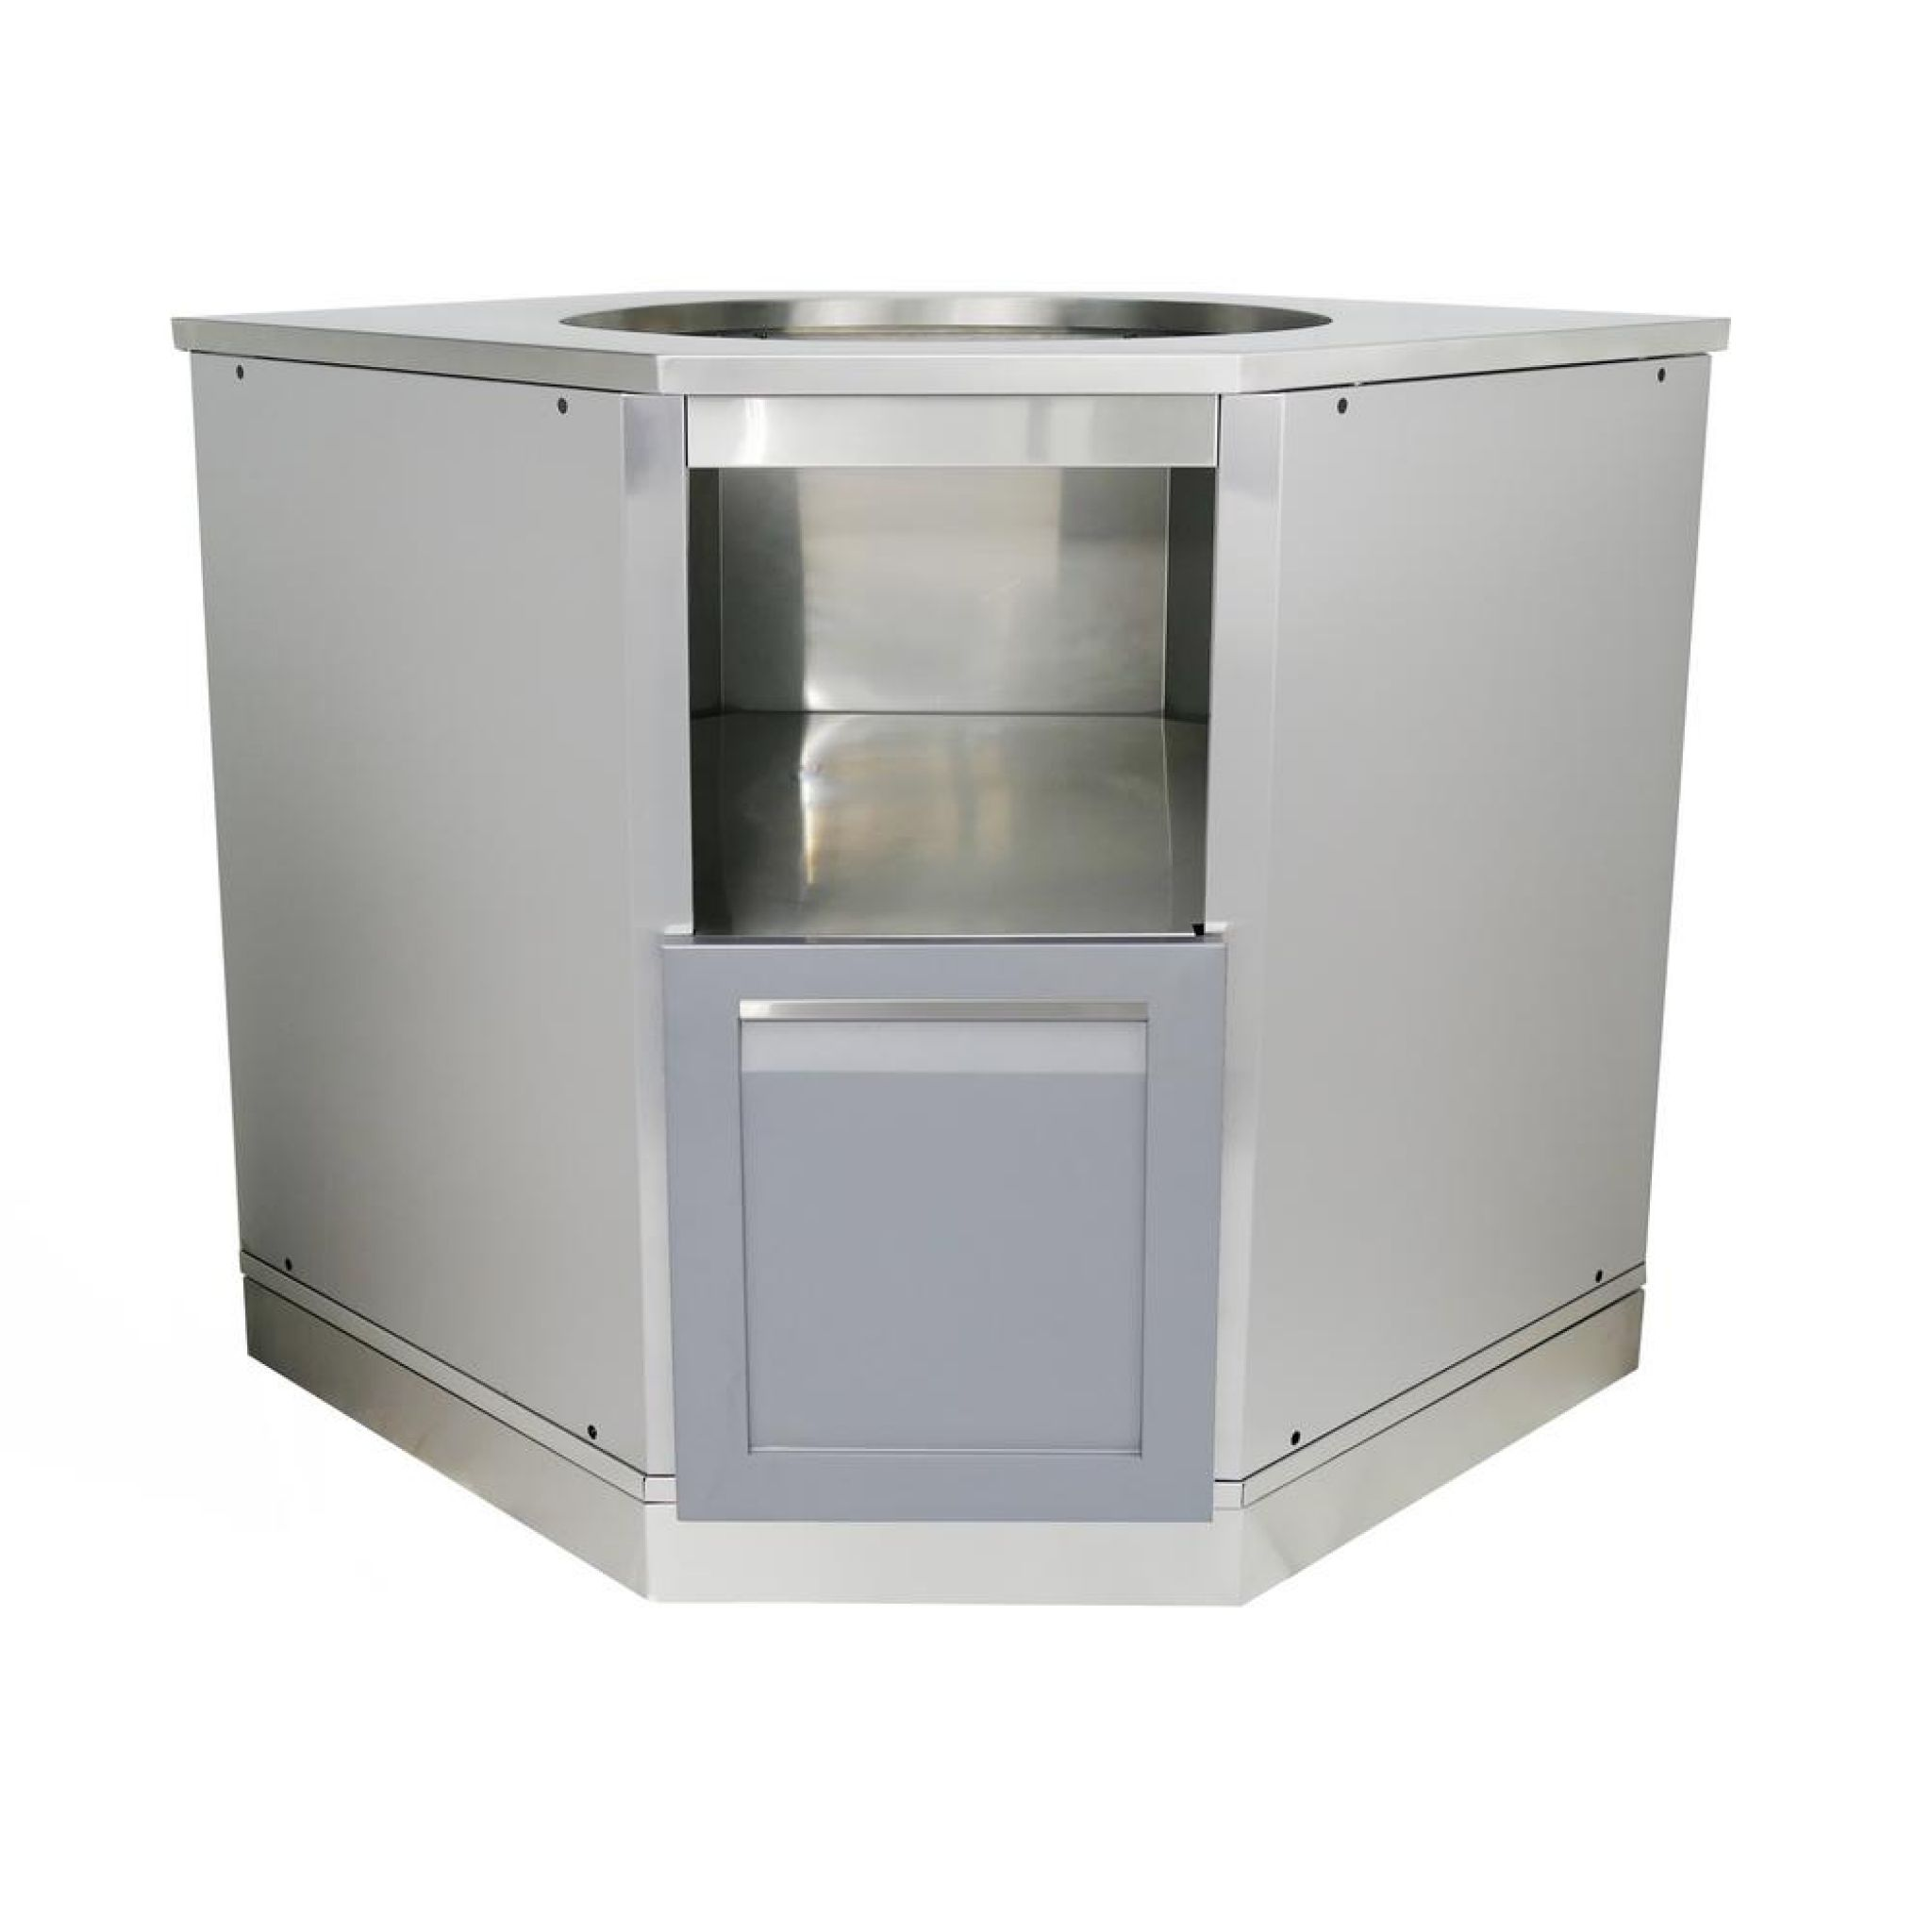 stainless steel outdoor kitchen cabinets interior house paint rh pinterest com